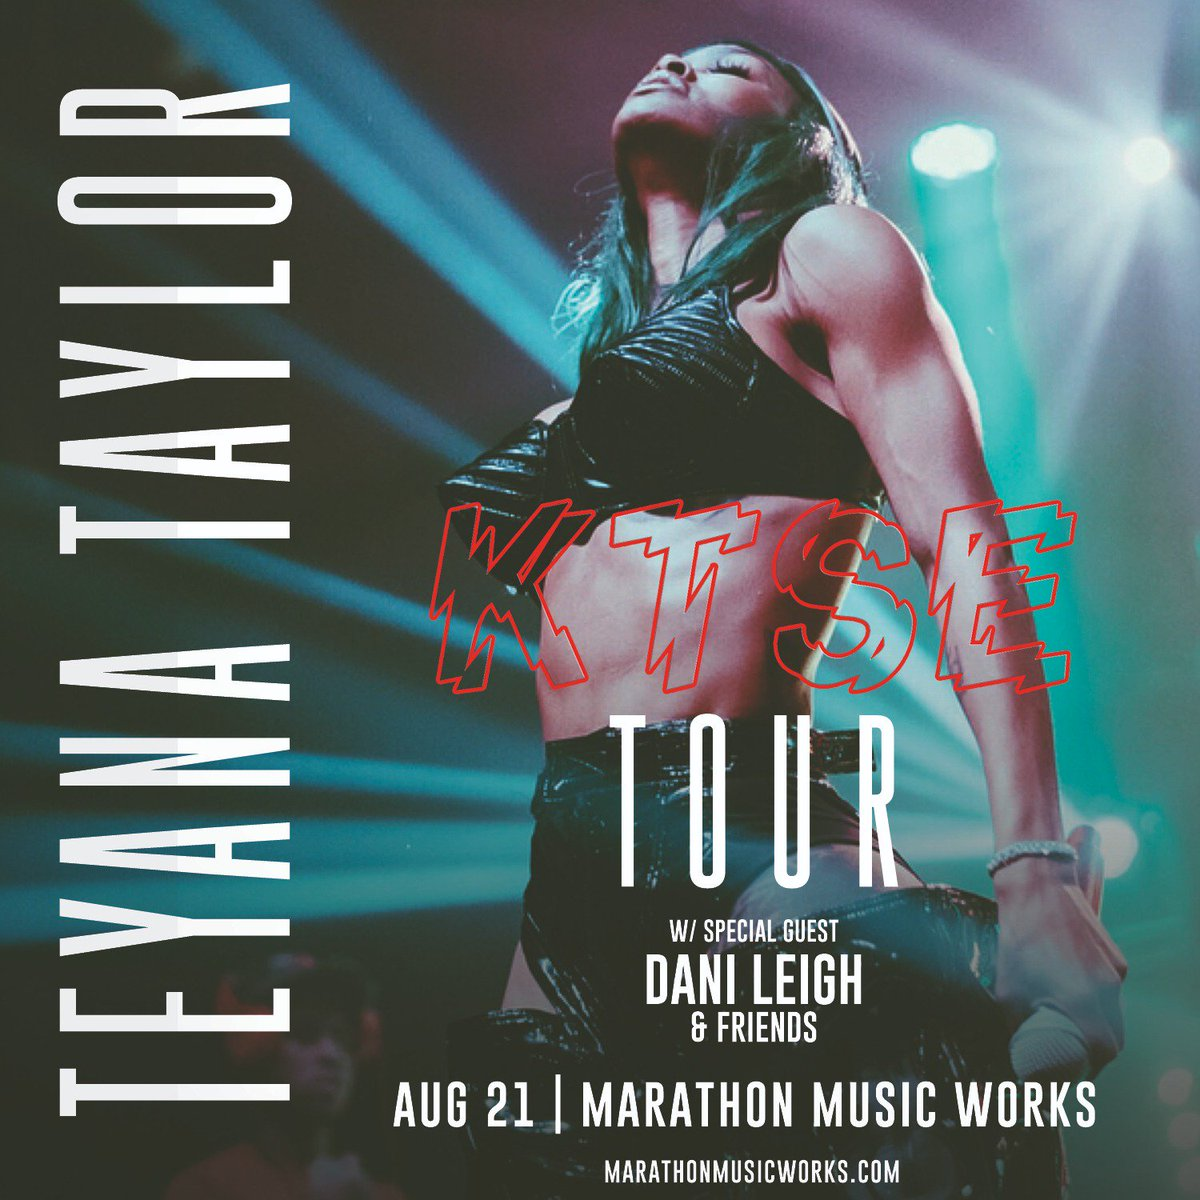 RT @AEGPresentsNash: TONIGHT! @TEYANATAYLOR w/ @DaniLeigh @MMusicWorks! Tickets available online or at the door. https://t.co/1fzTo05o7M